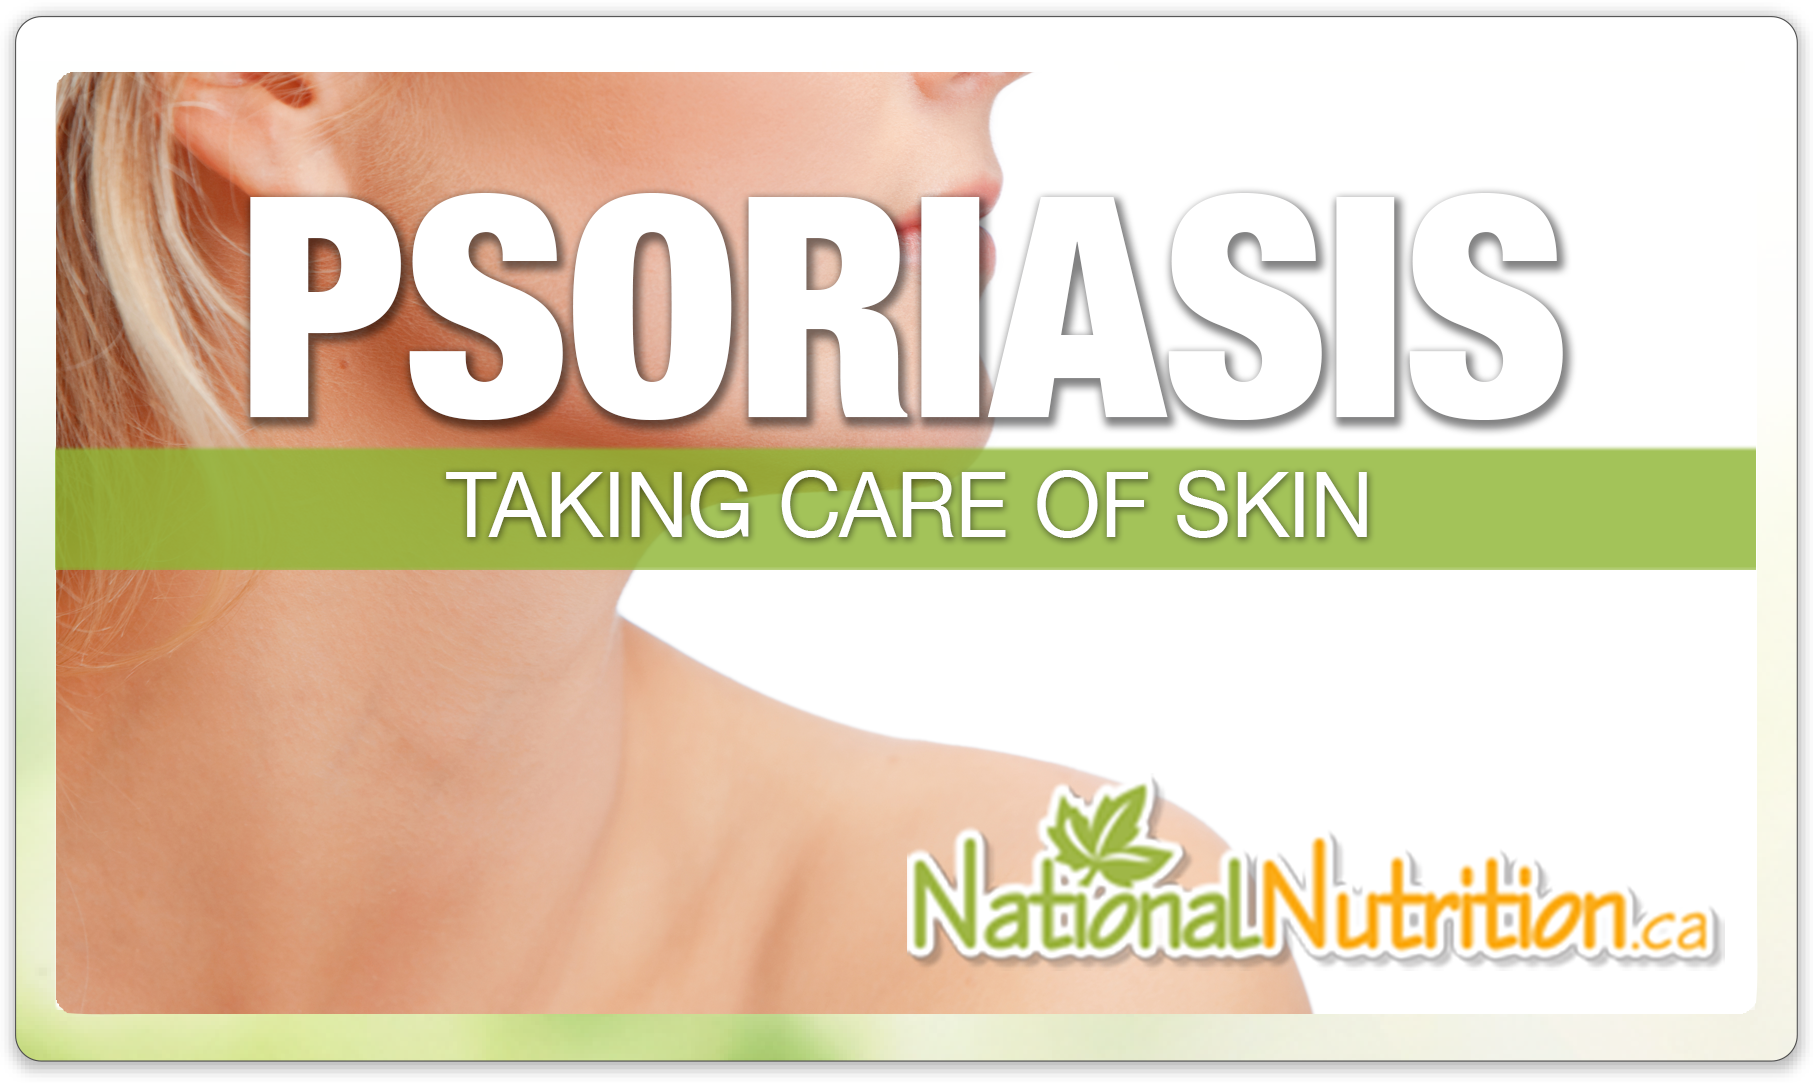 Psoriasis Relief - National Nutrition Articles